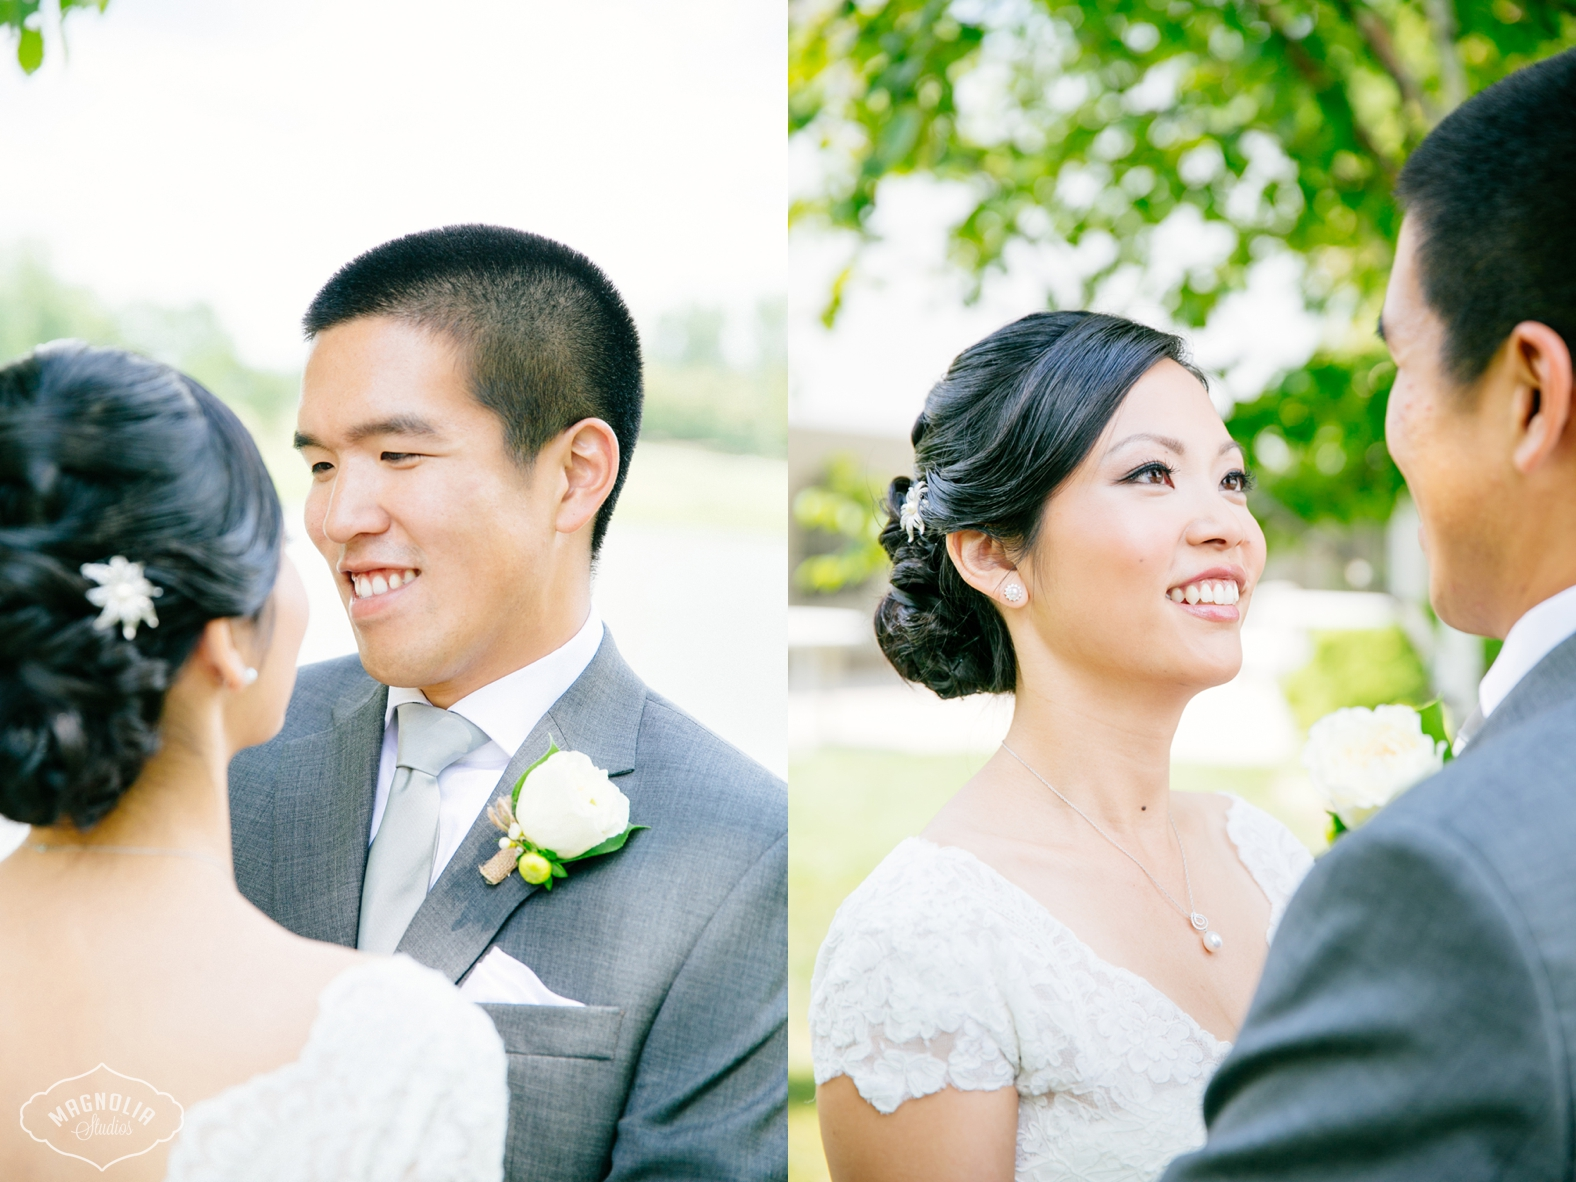 Magnolia_Studios_Wedding_0239